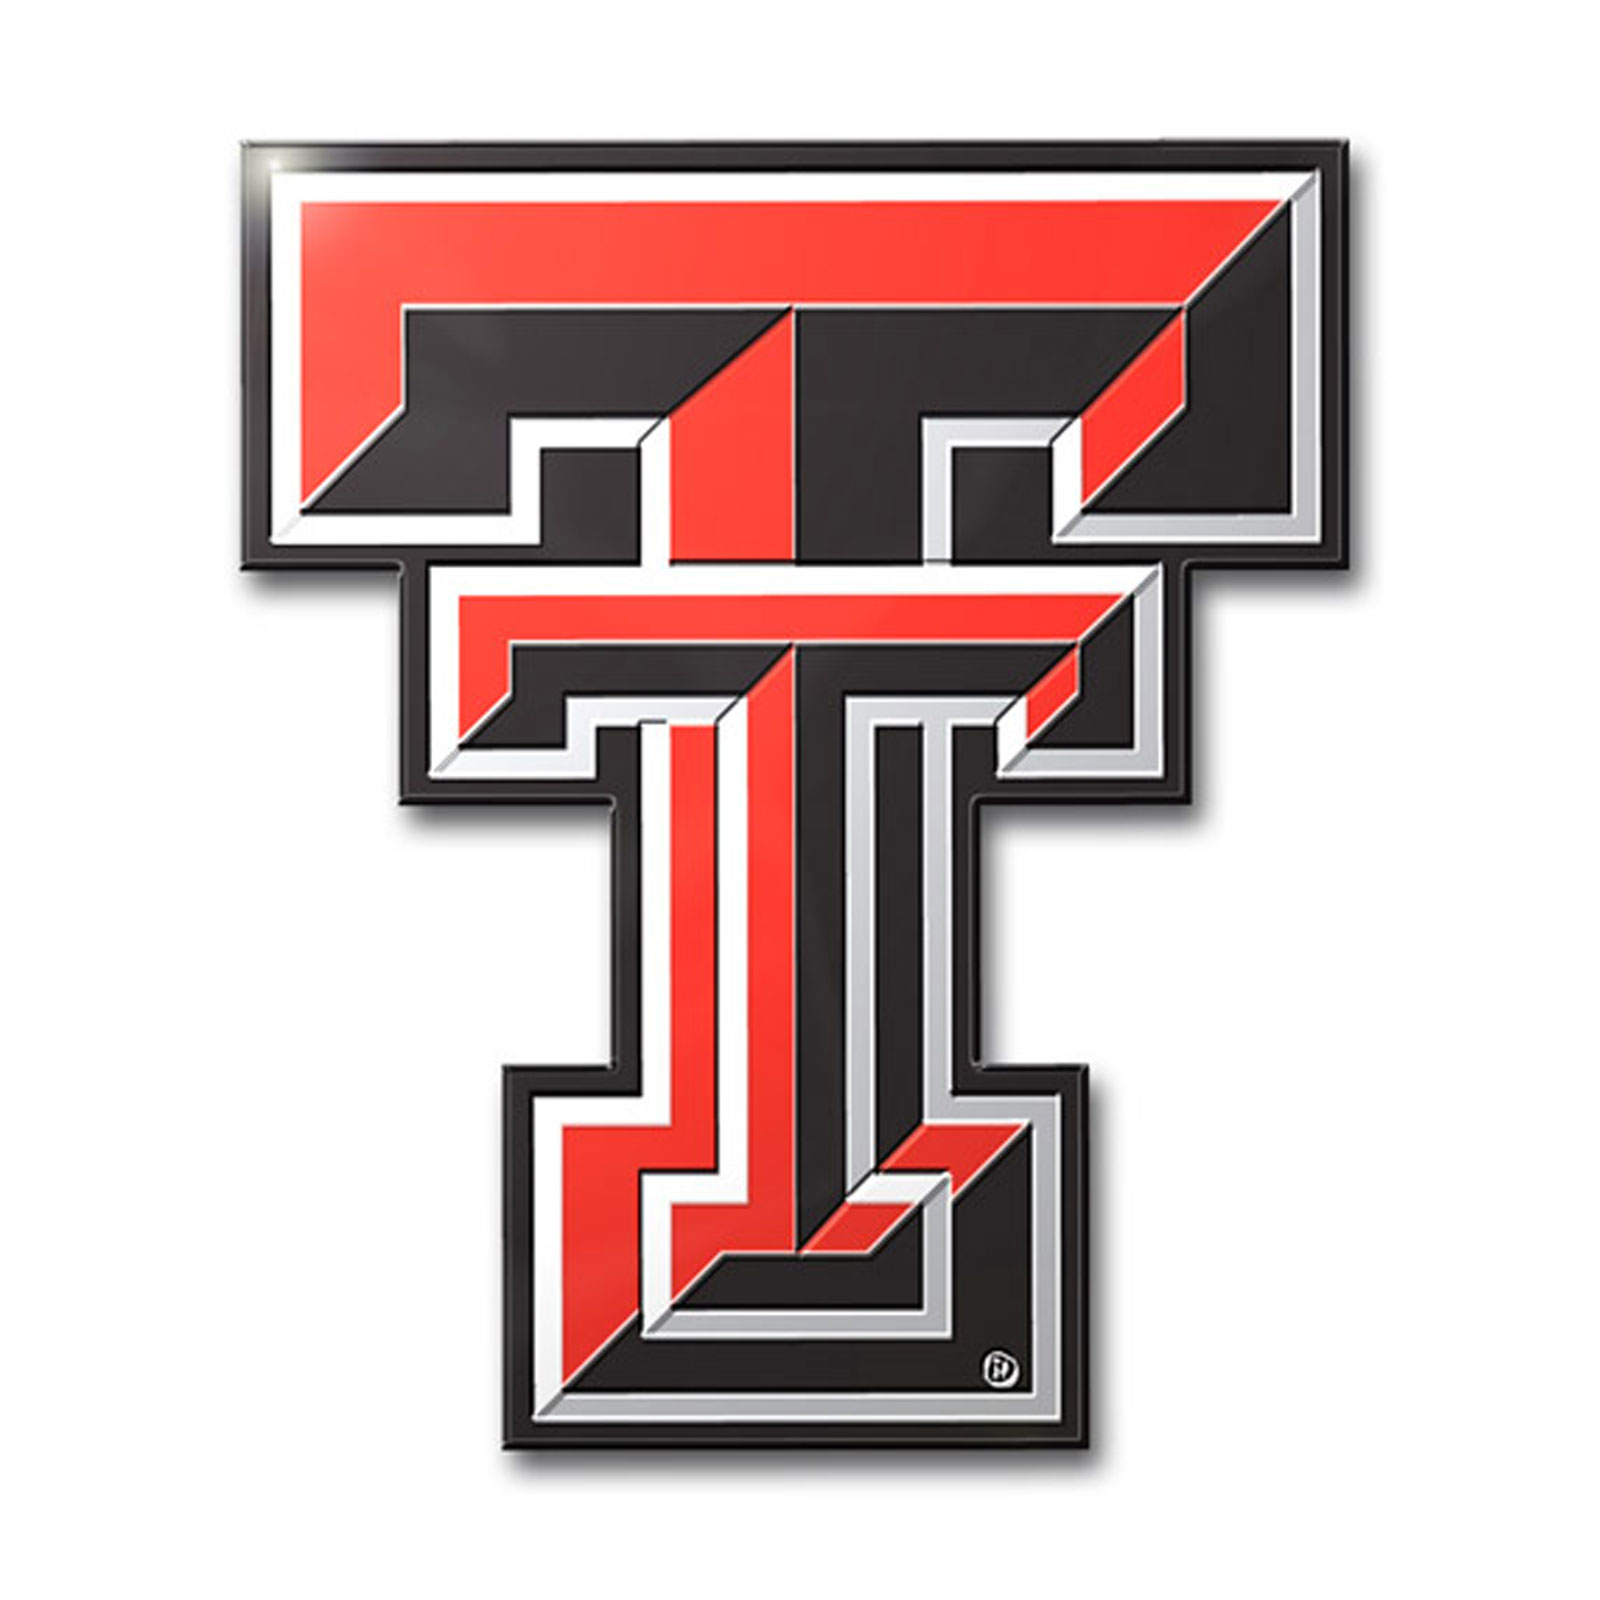 Details about Texas Tech Red Raiders Primary Logo Color Aluminum Car Auto  Emblem.